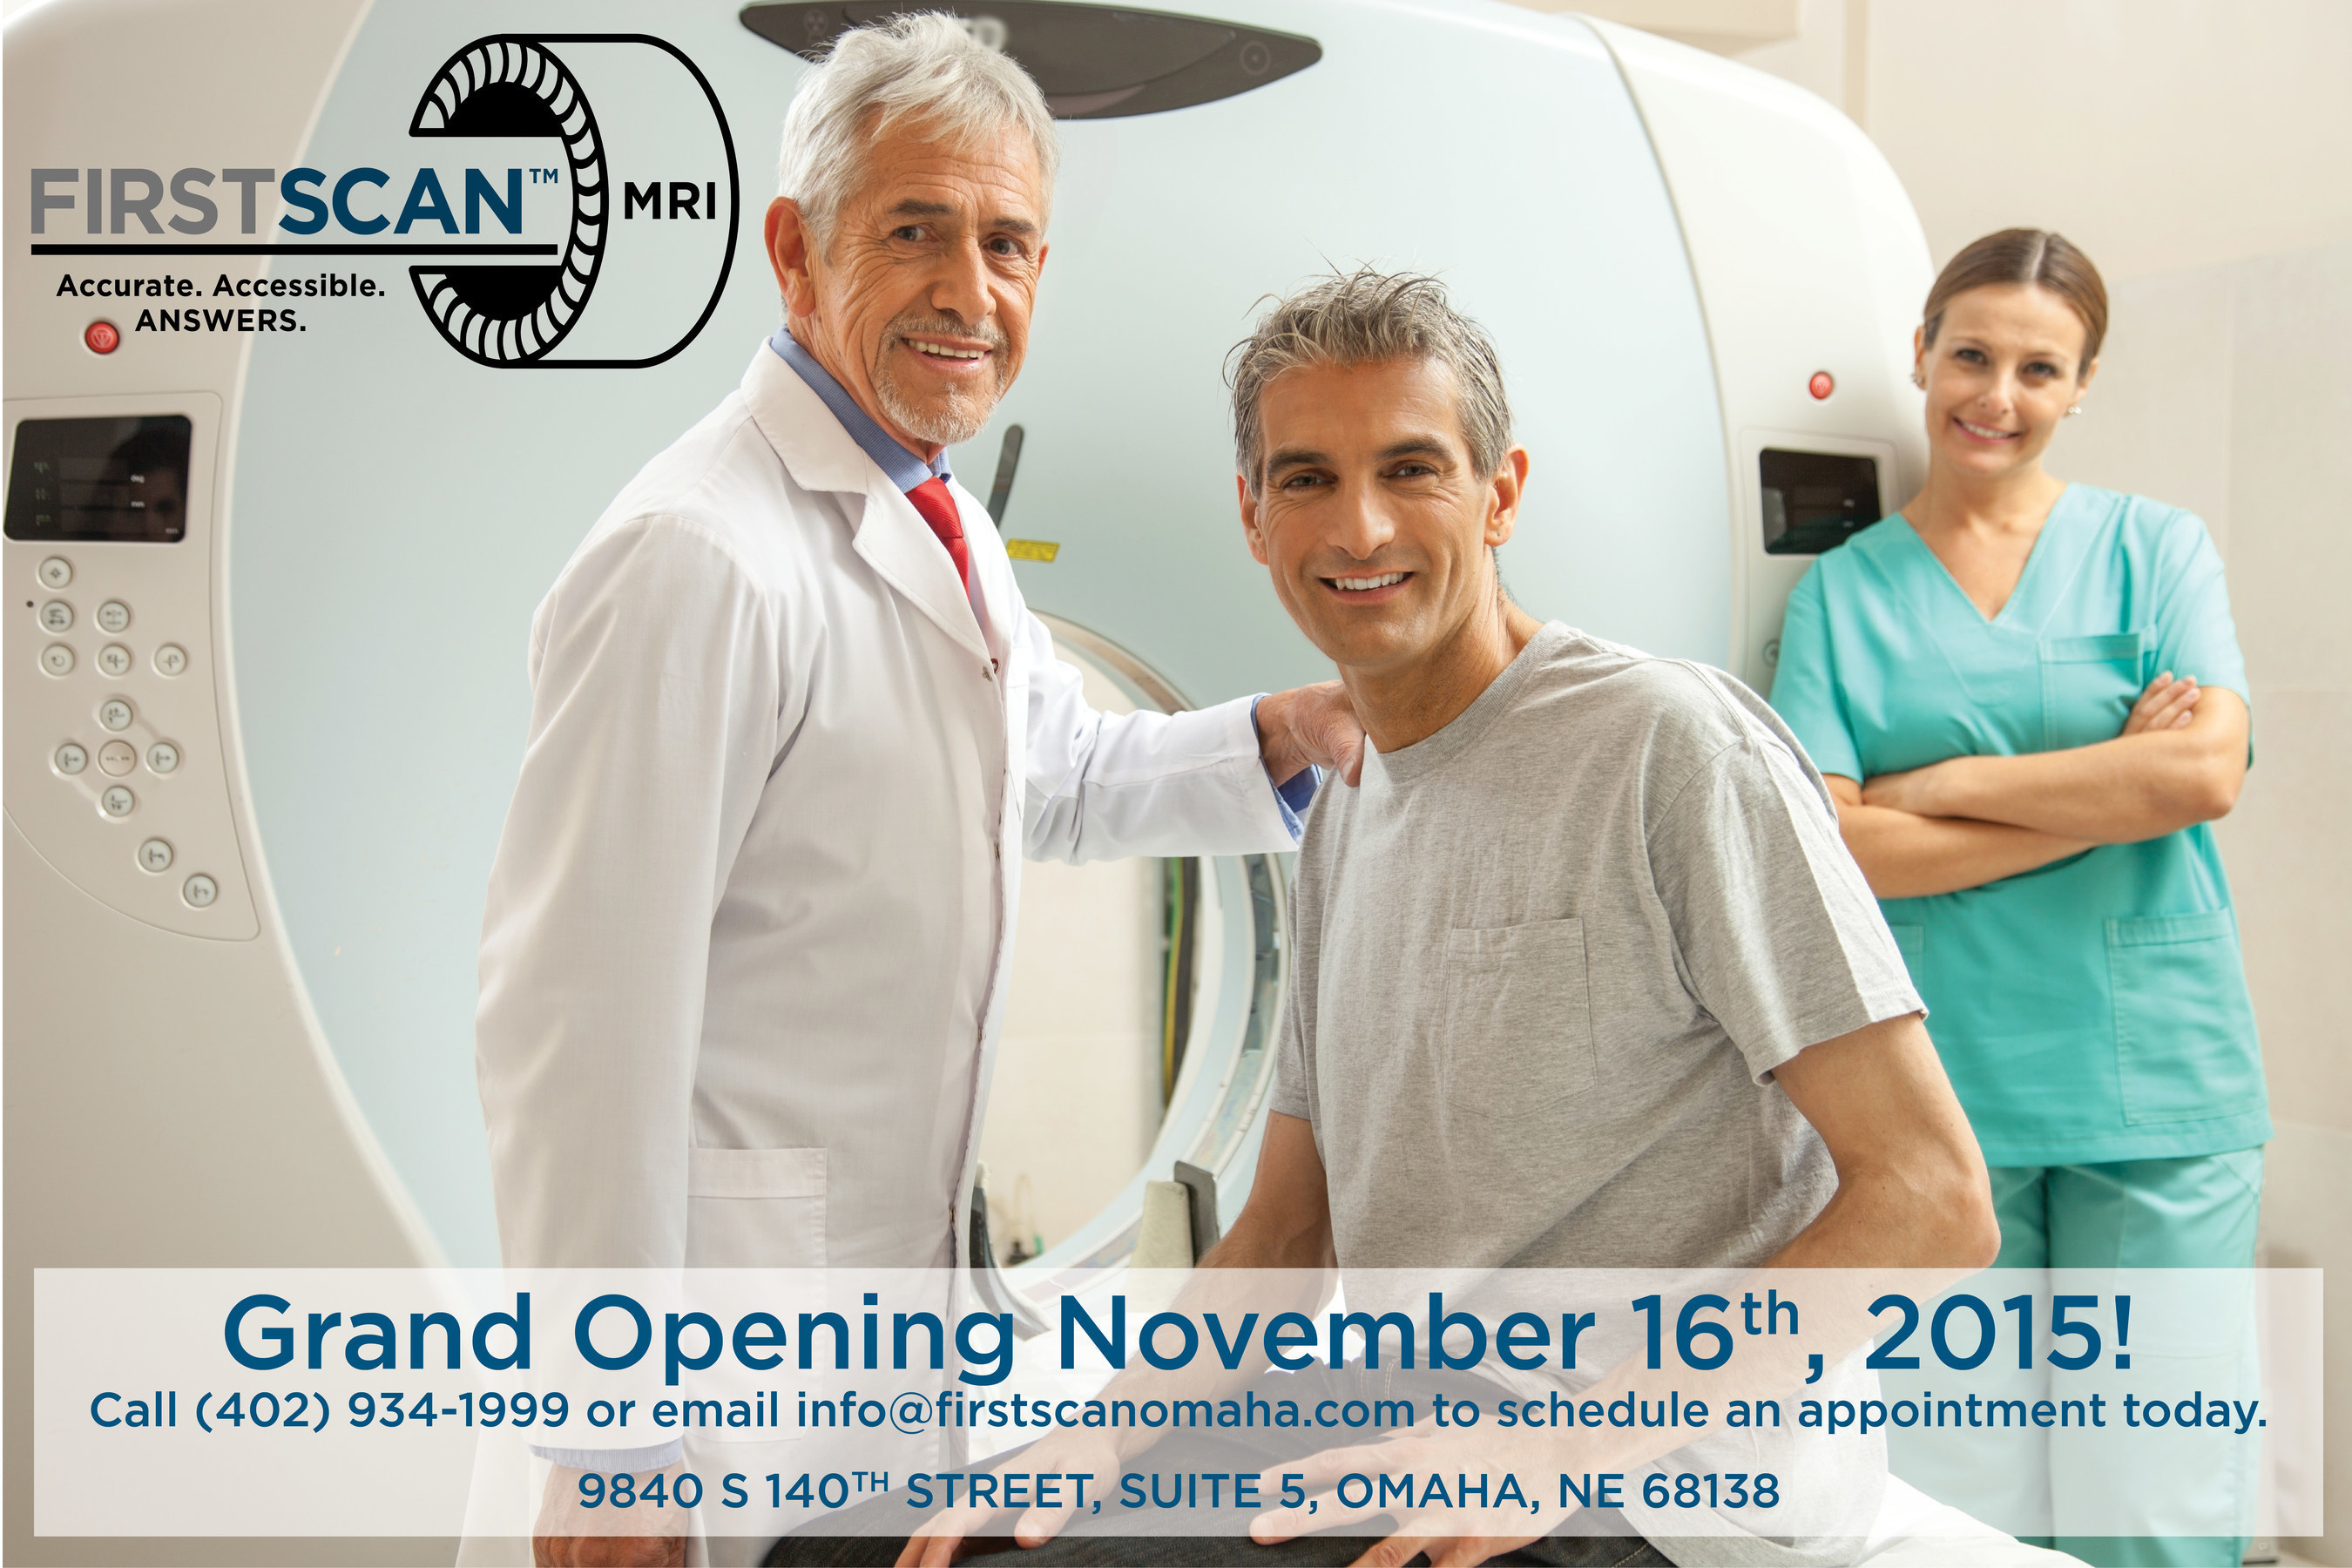 Omaha-based Company FirstScan introduces first and only clinic dedicated to MRI screening prostate cancer.